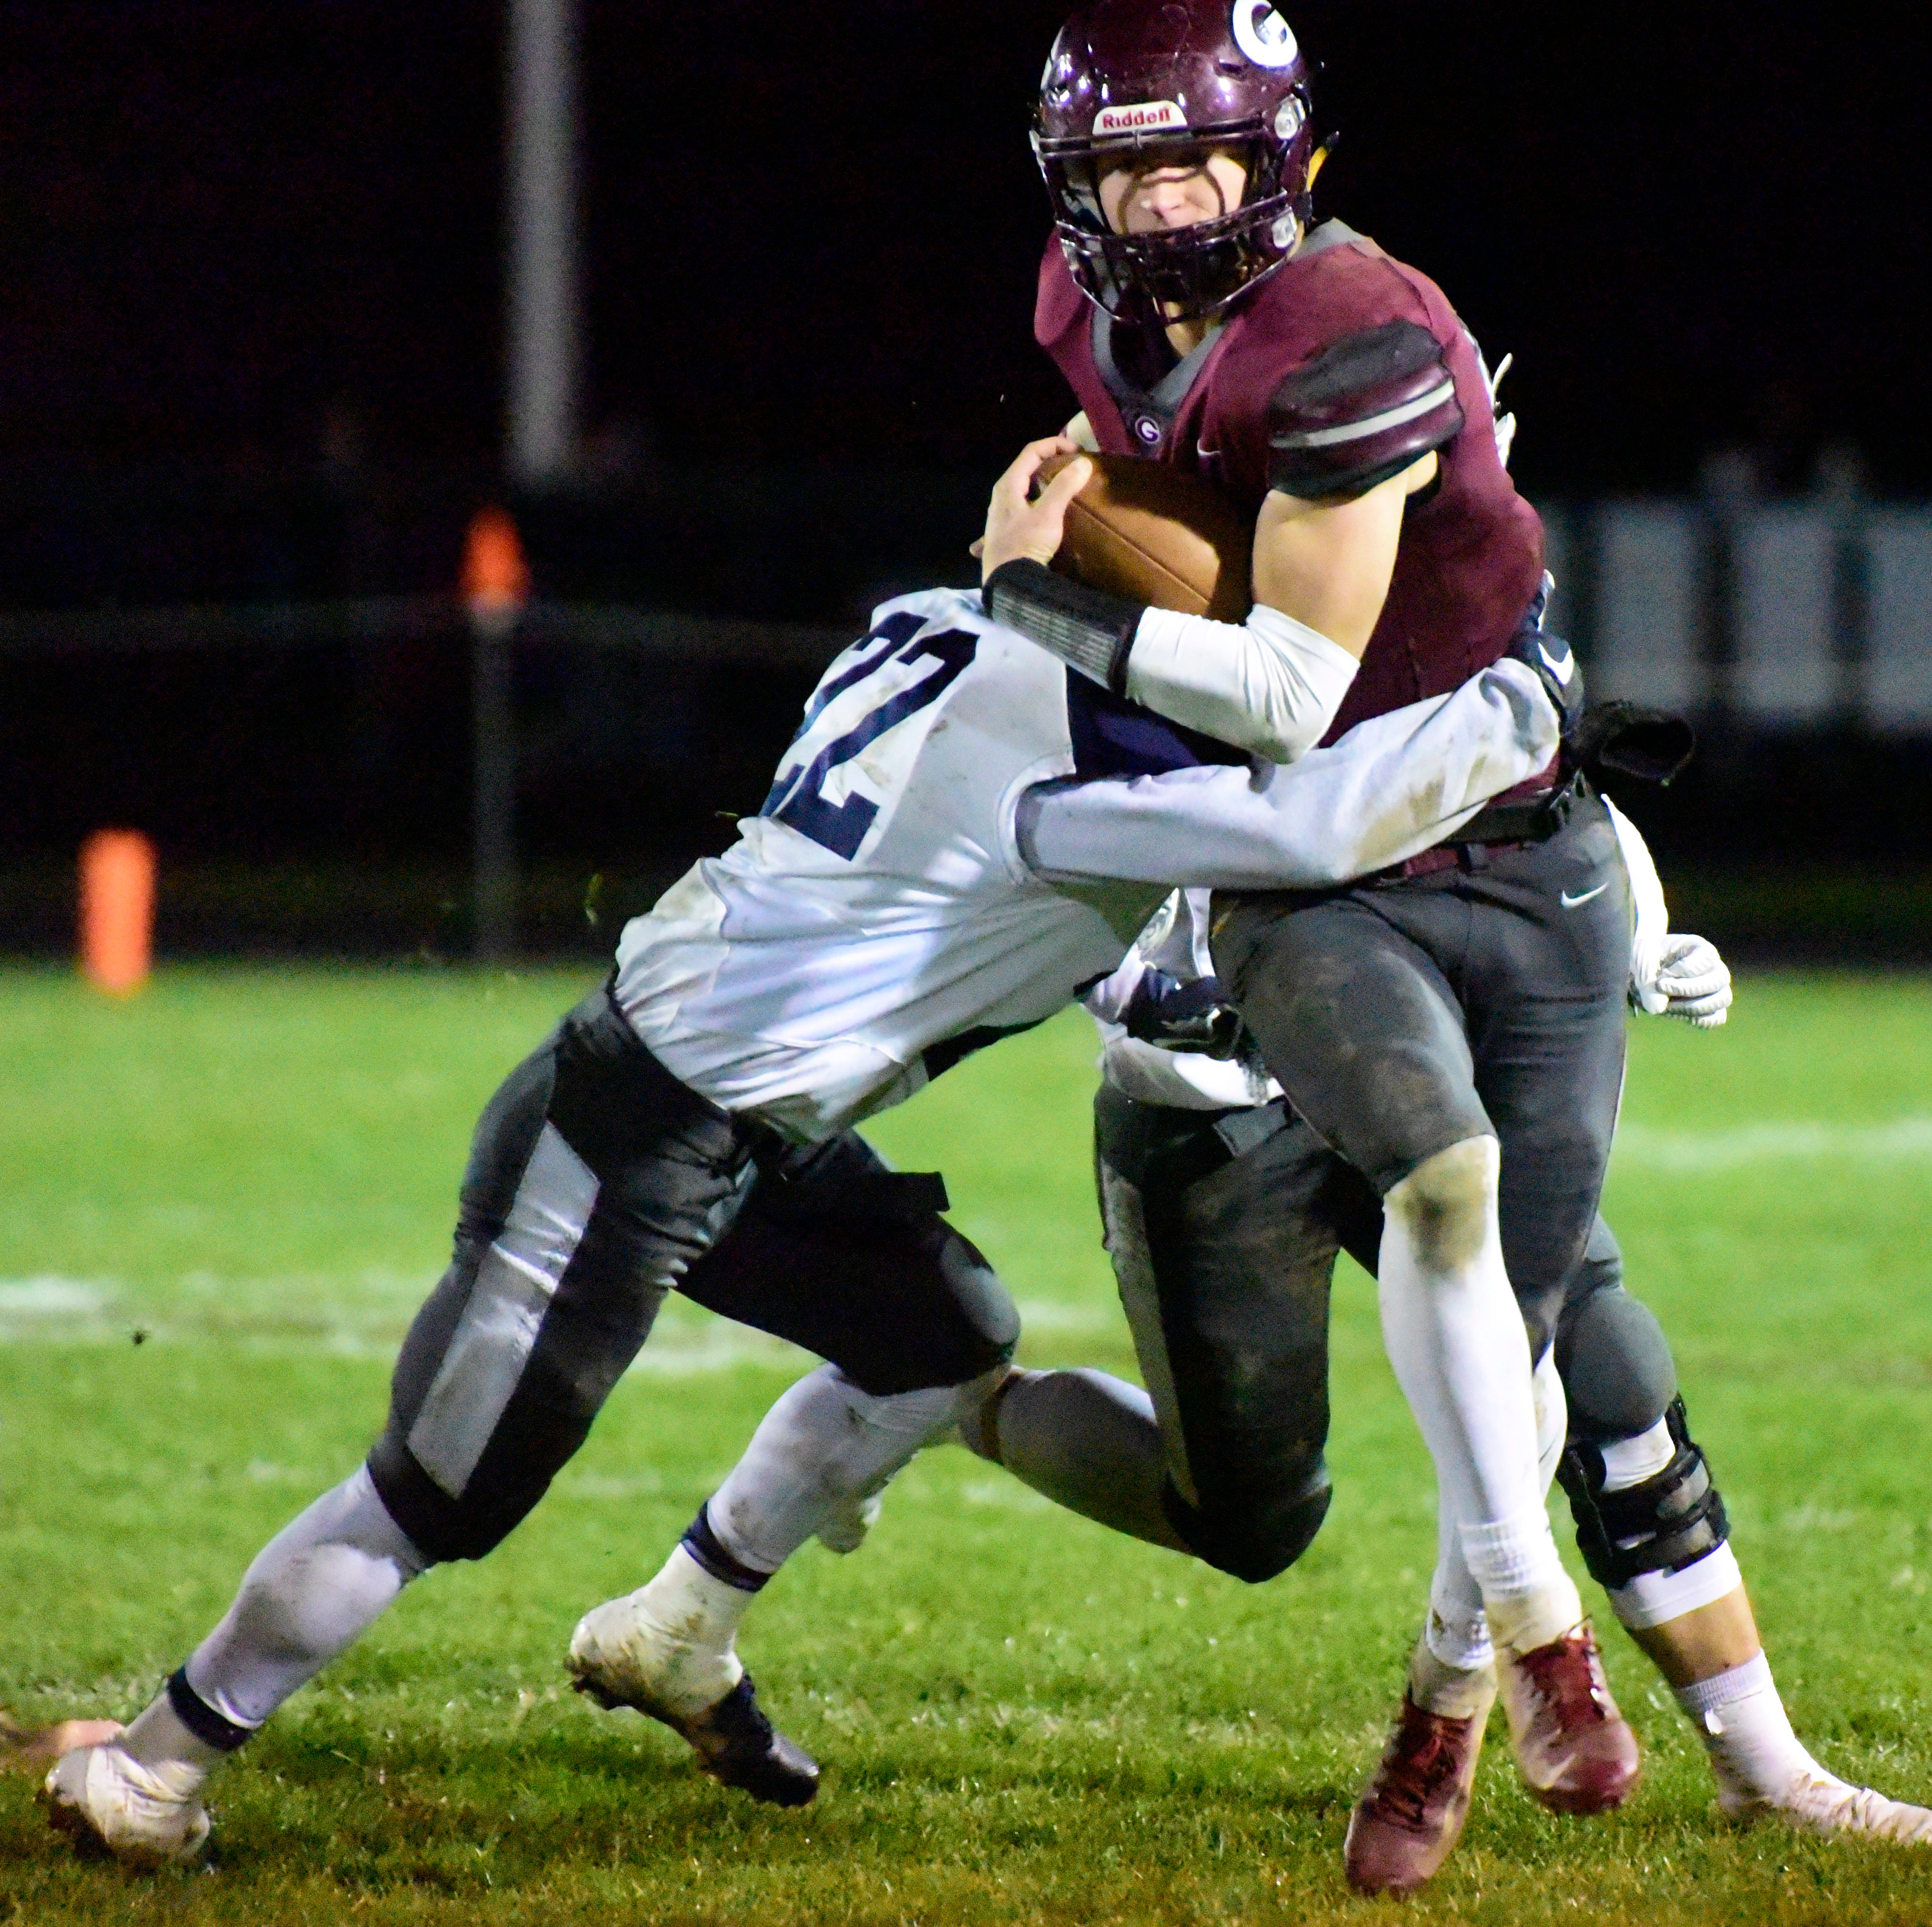 Genoa's Plantz Northwest District player of the year on offense in Division V